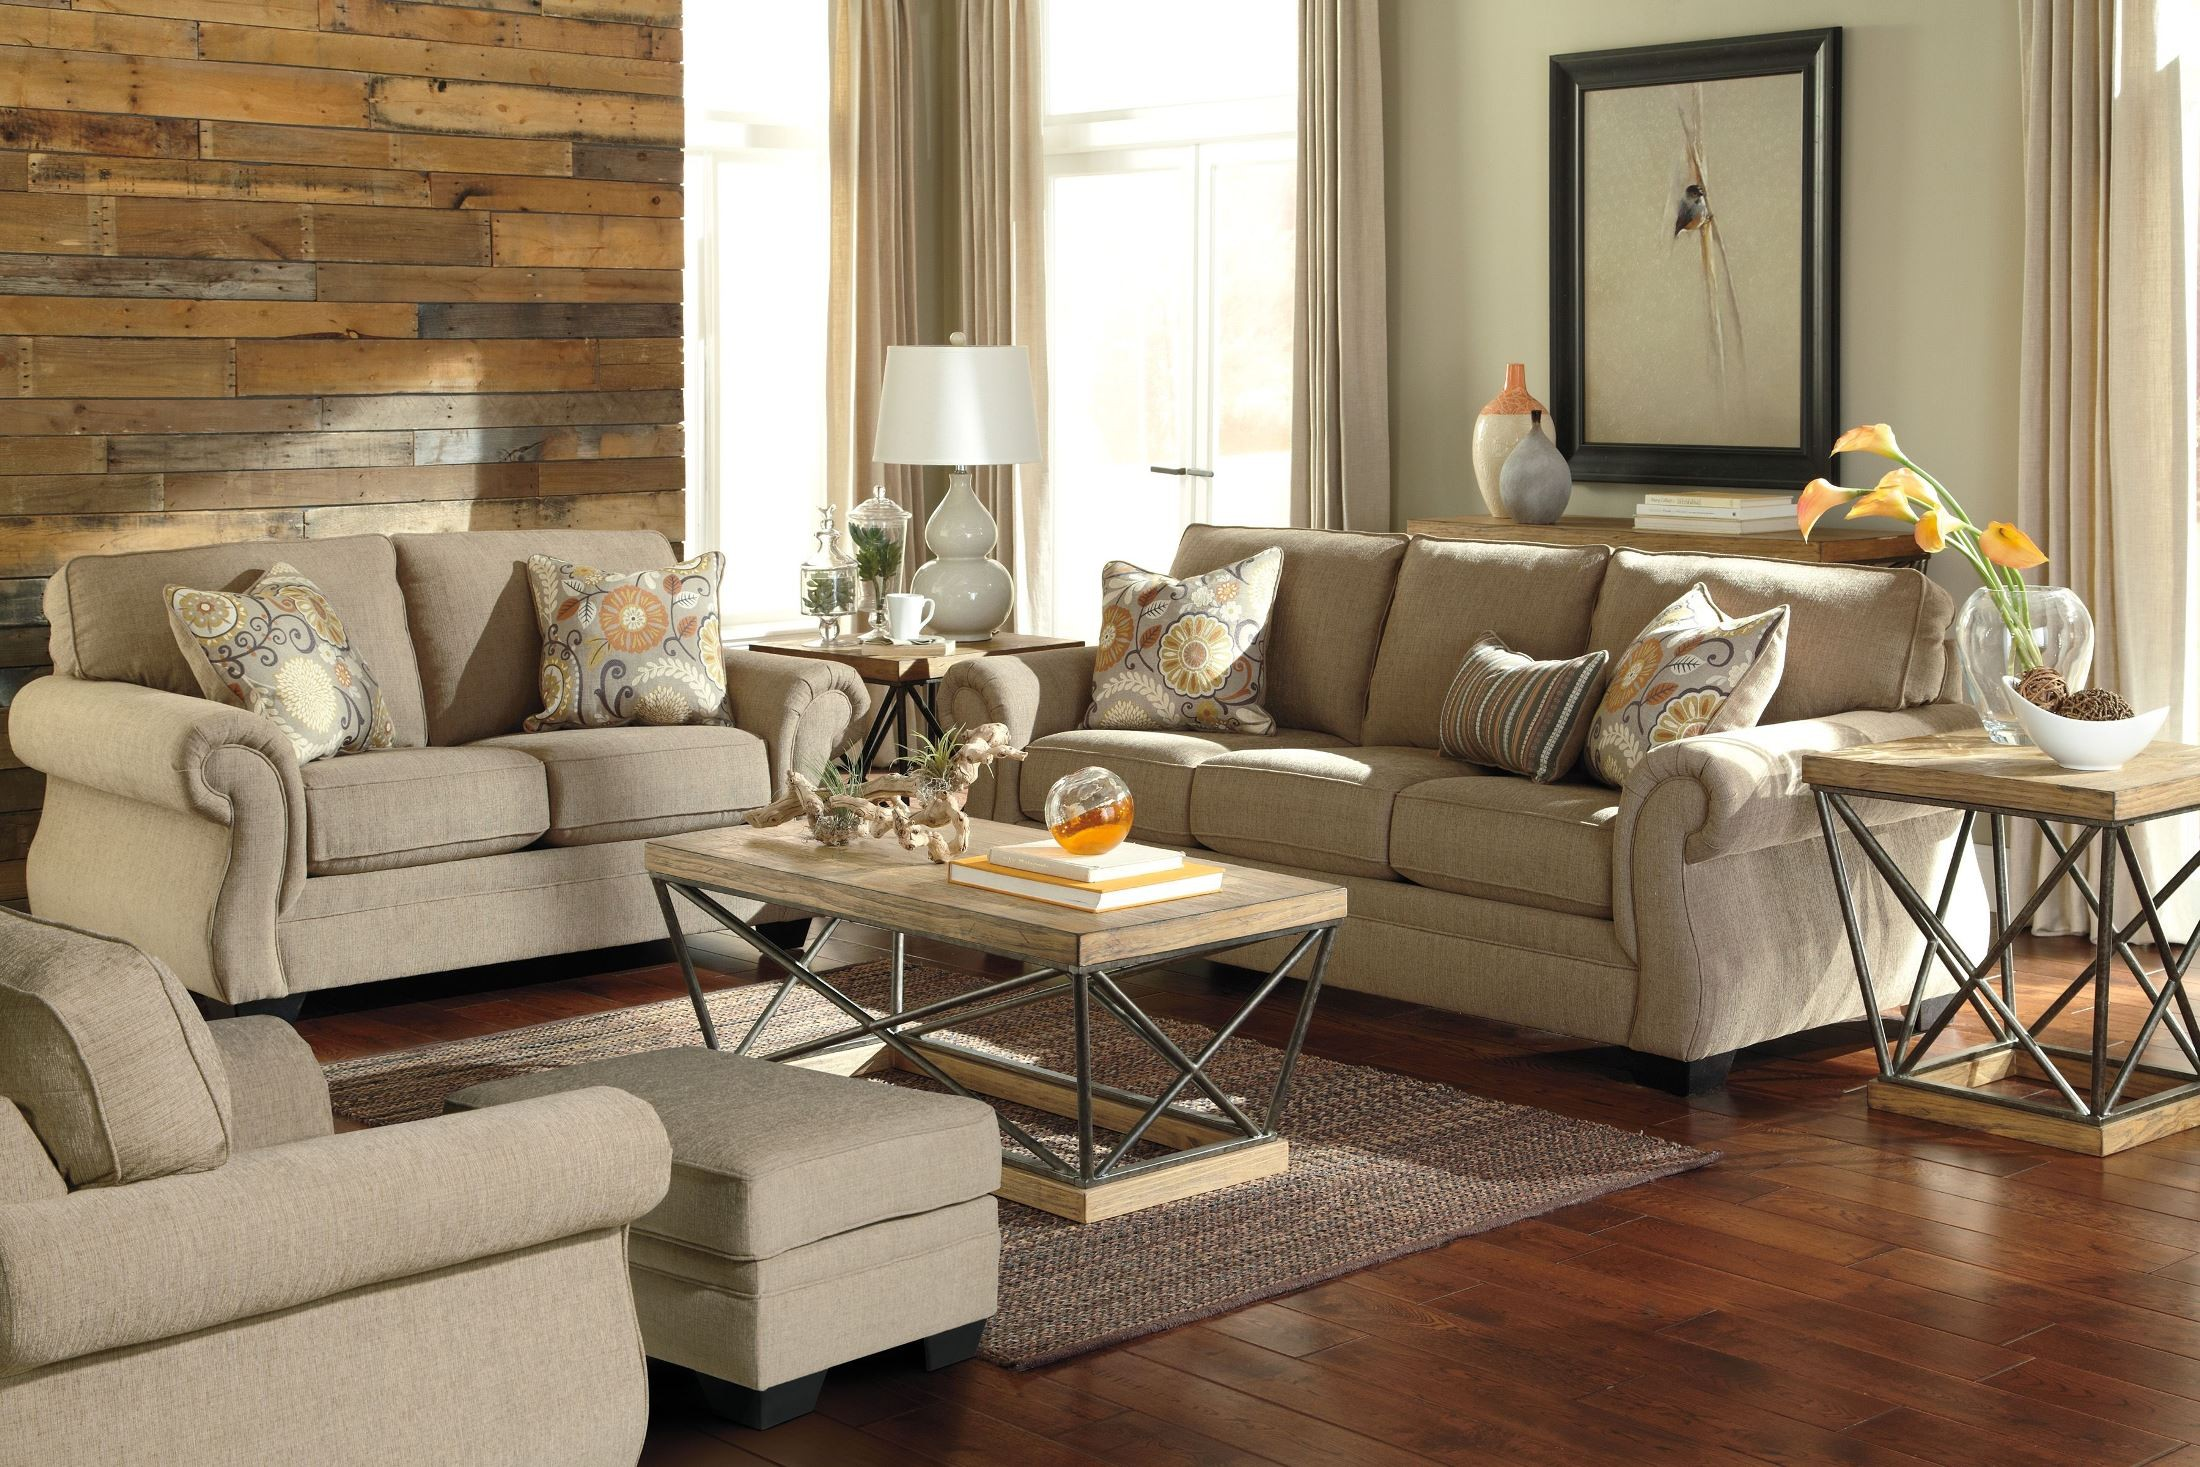 Tailya Barley Living Room Set From Ashley (4770038